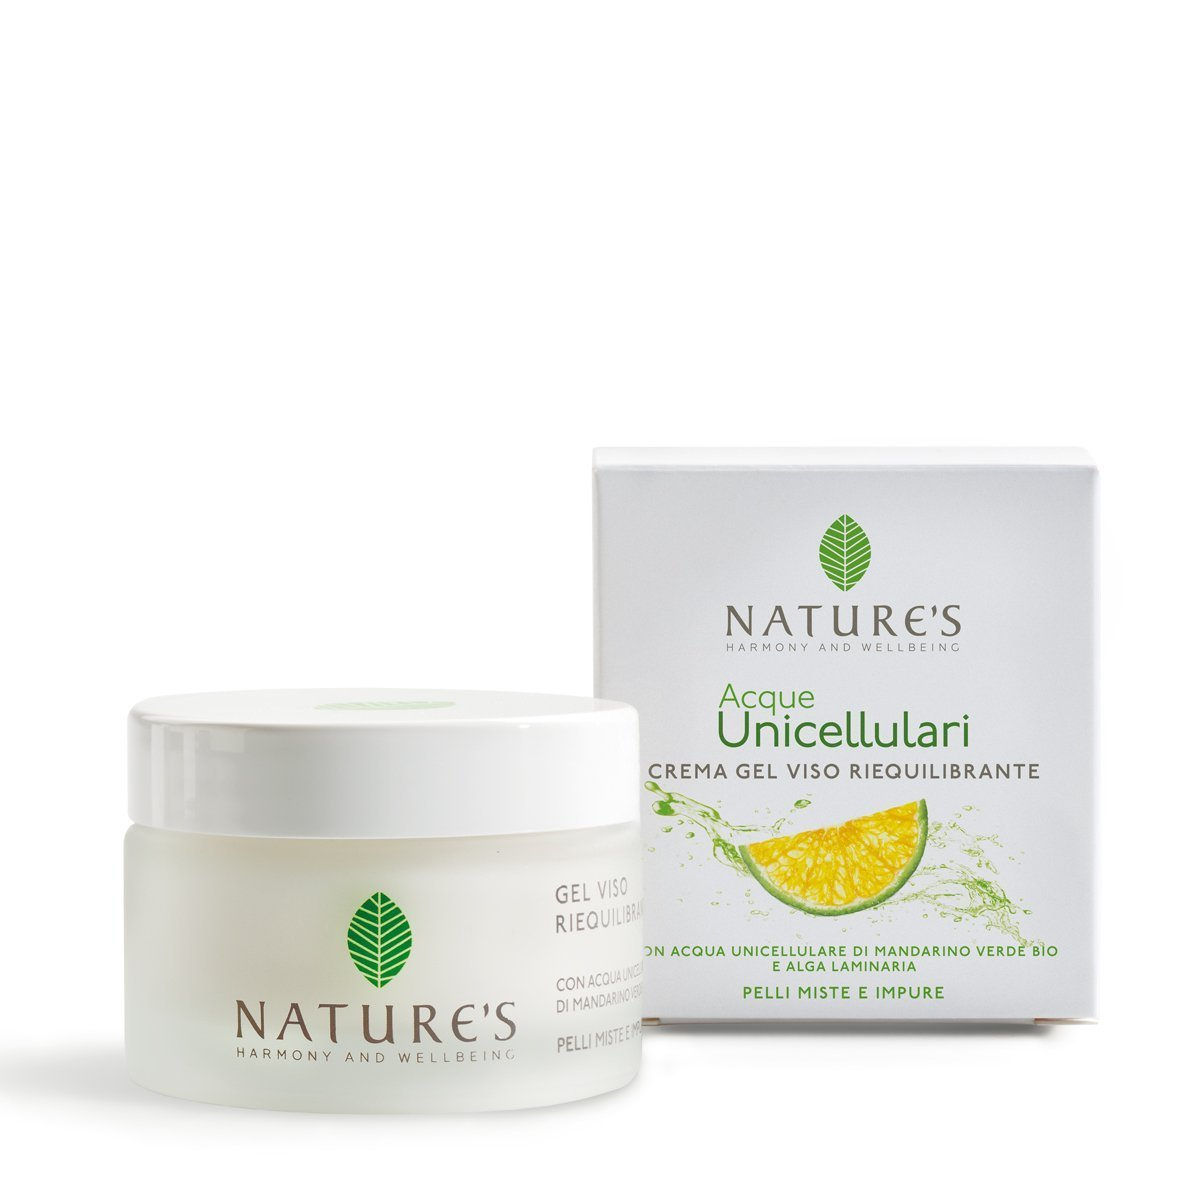 Crema Gel Viso Riequilibrante Acque Unicellulari Nature's